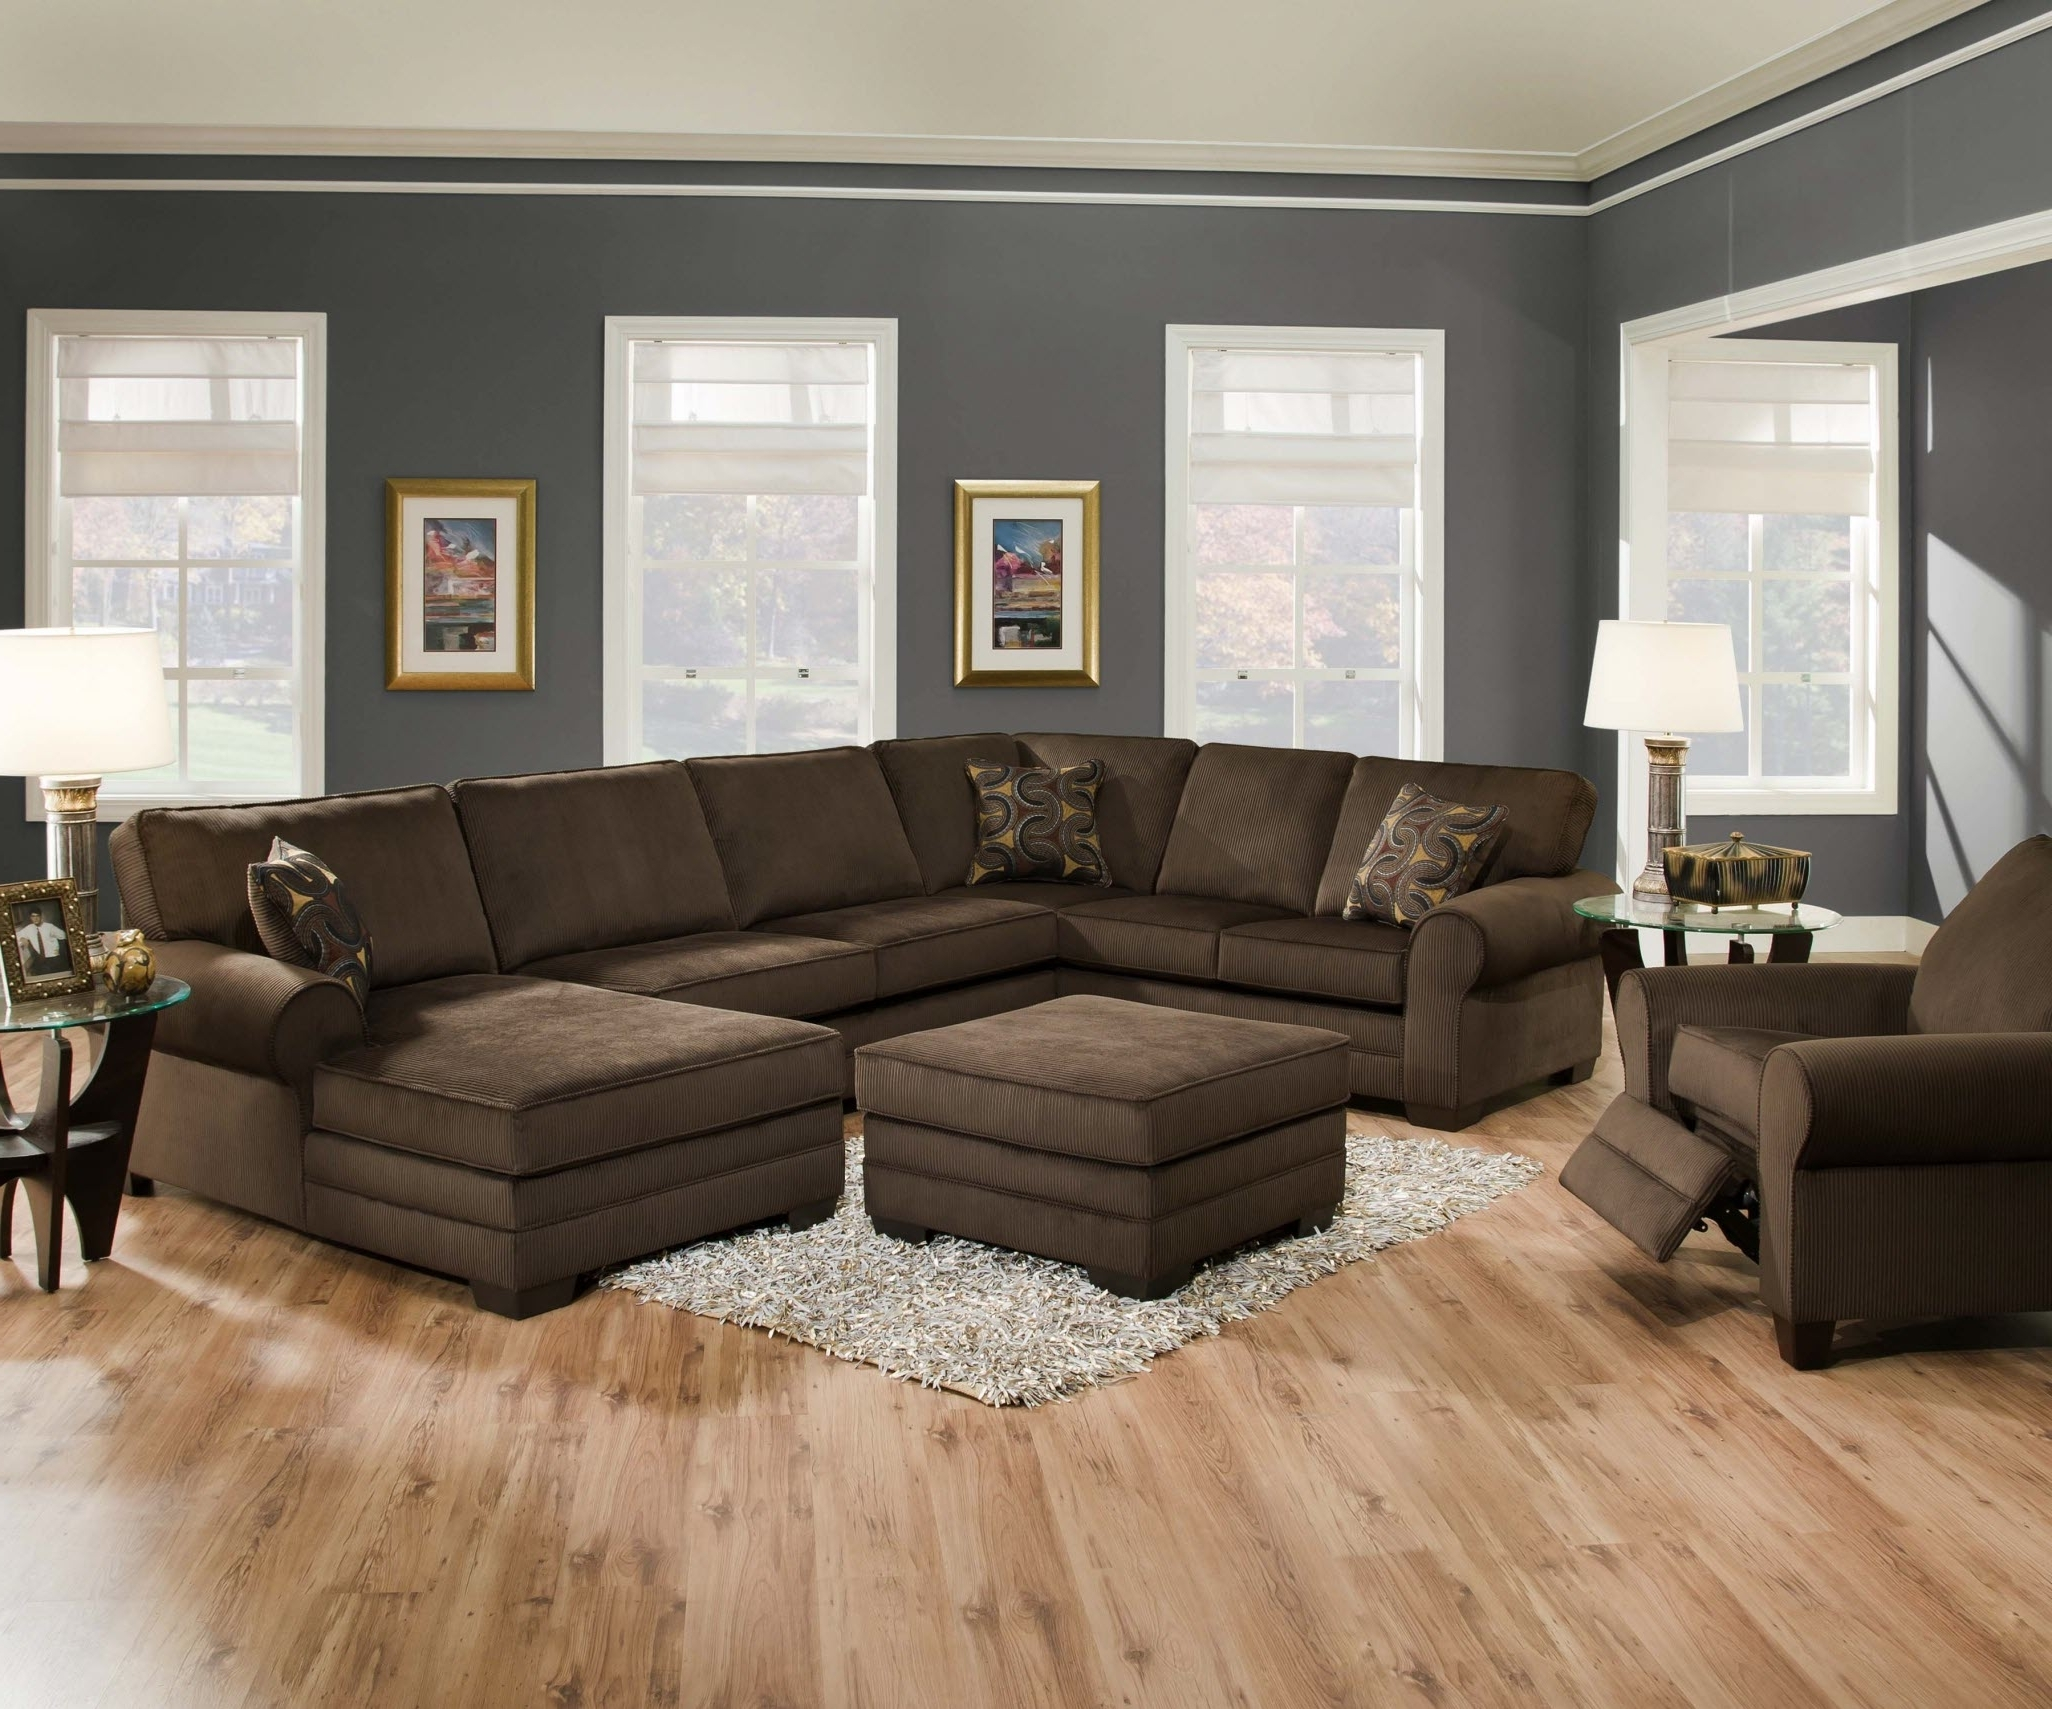 Designssimmons – Simmons Deluxe Beluga Sectional In Widely Used Simmons Chaise Sofas (View 4 of 20)